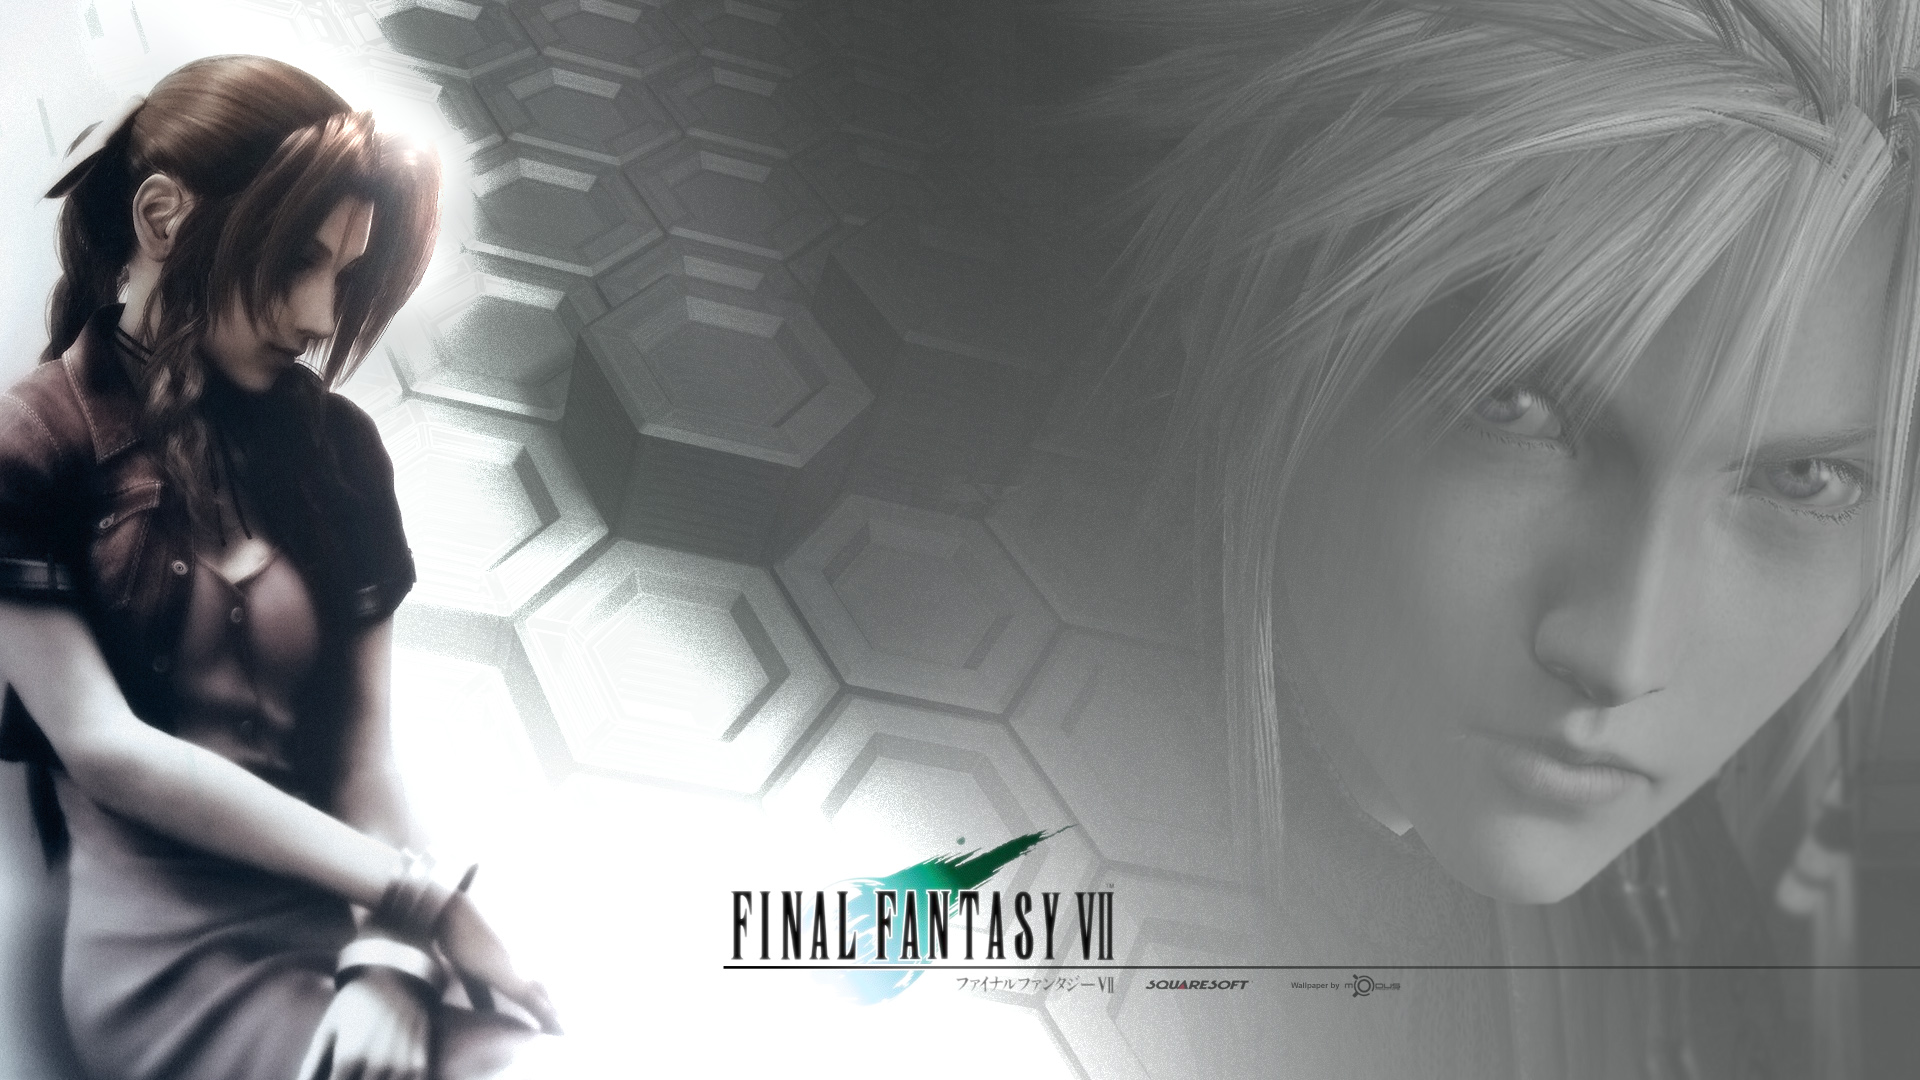 final fantasy vii hd wallpaper #656462 - zerochan anime image board